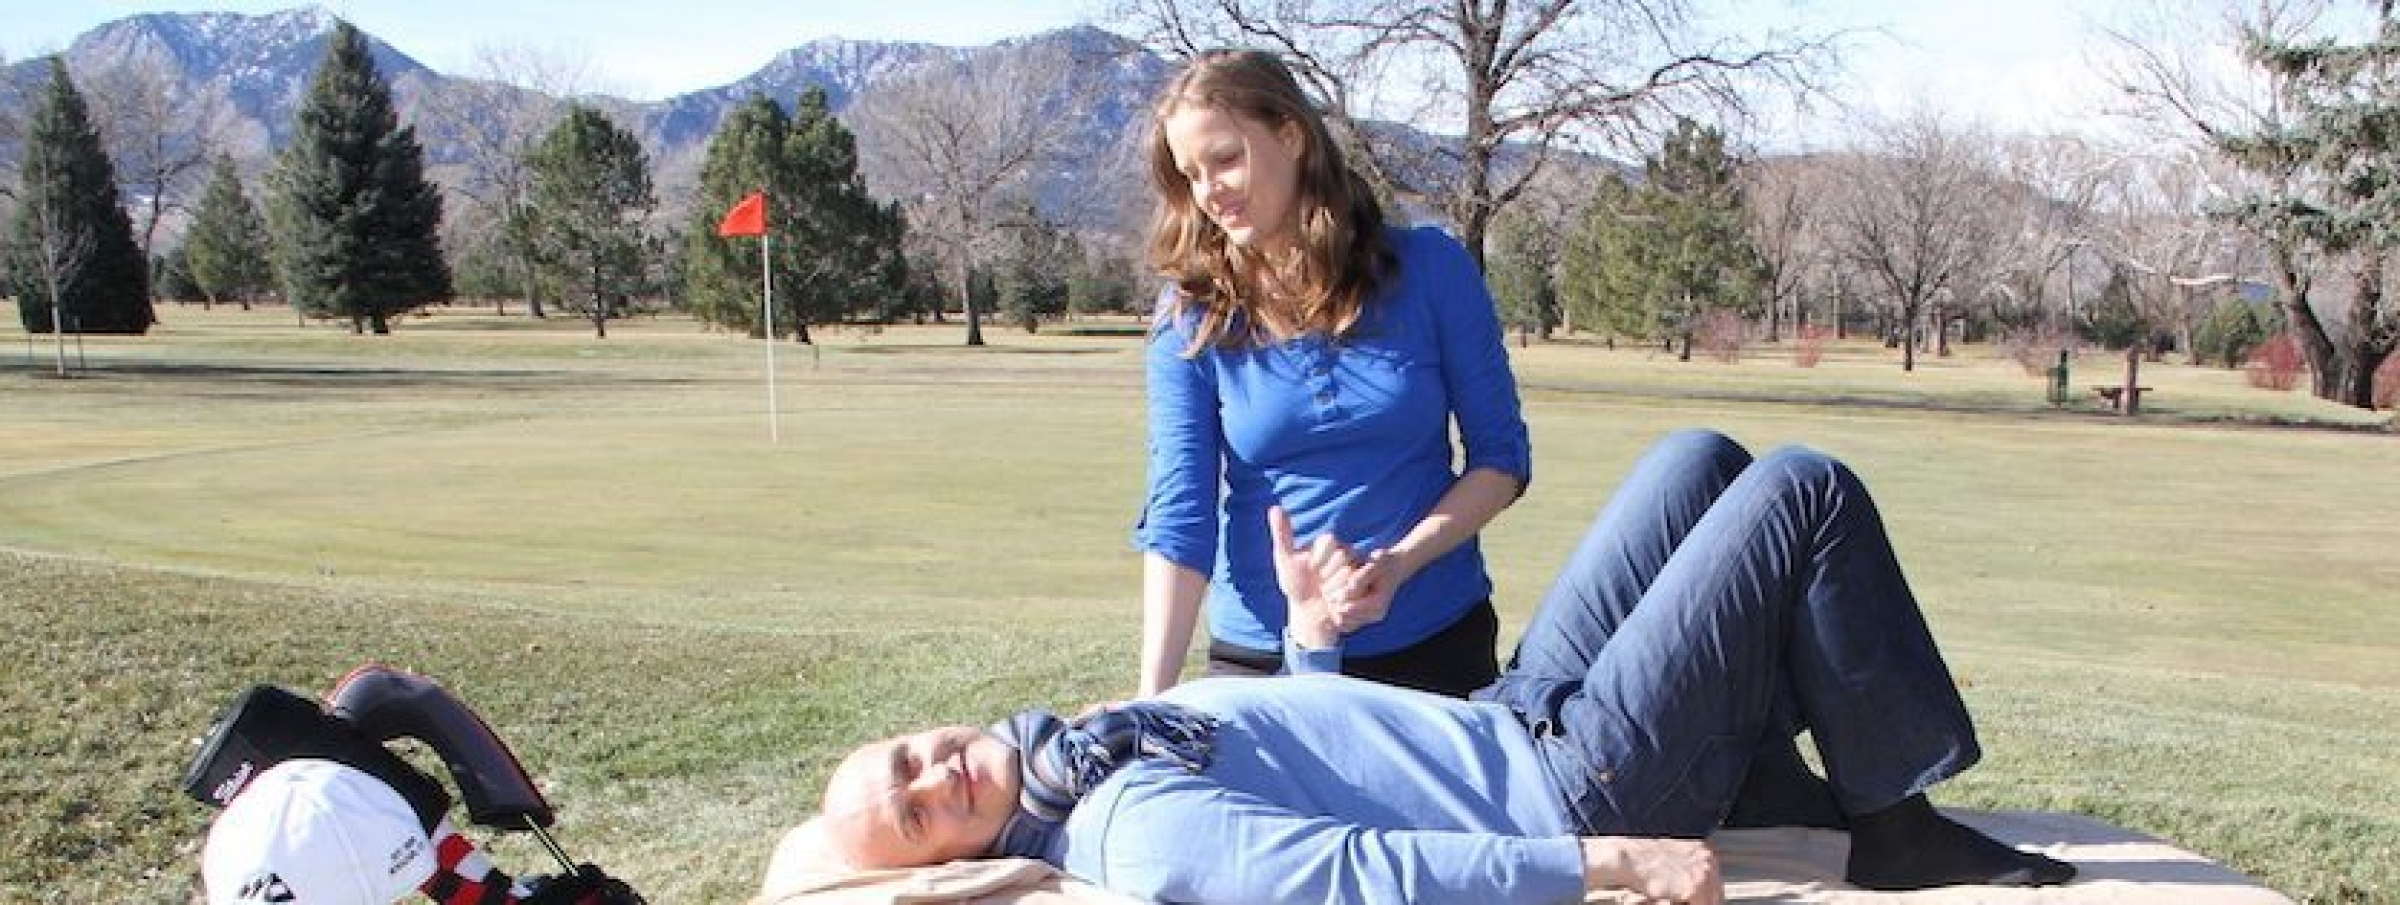 Massage in Denver massage for golf swing assisted stretching